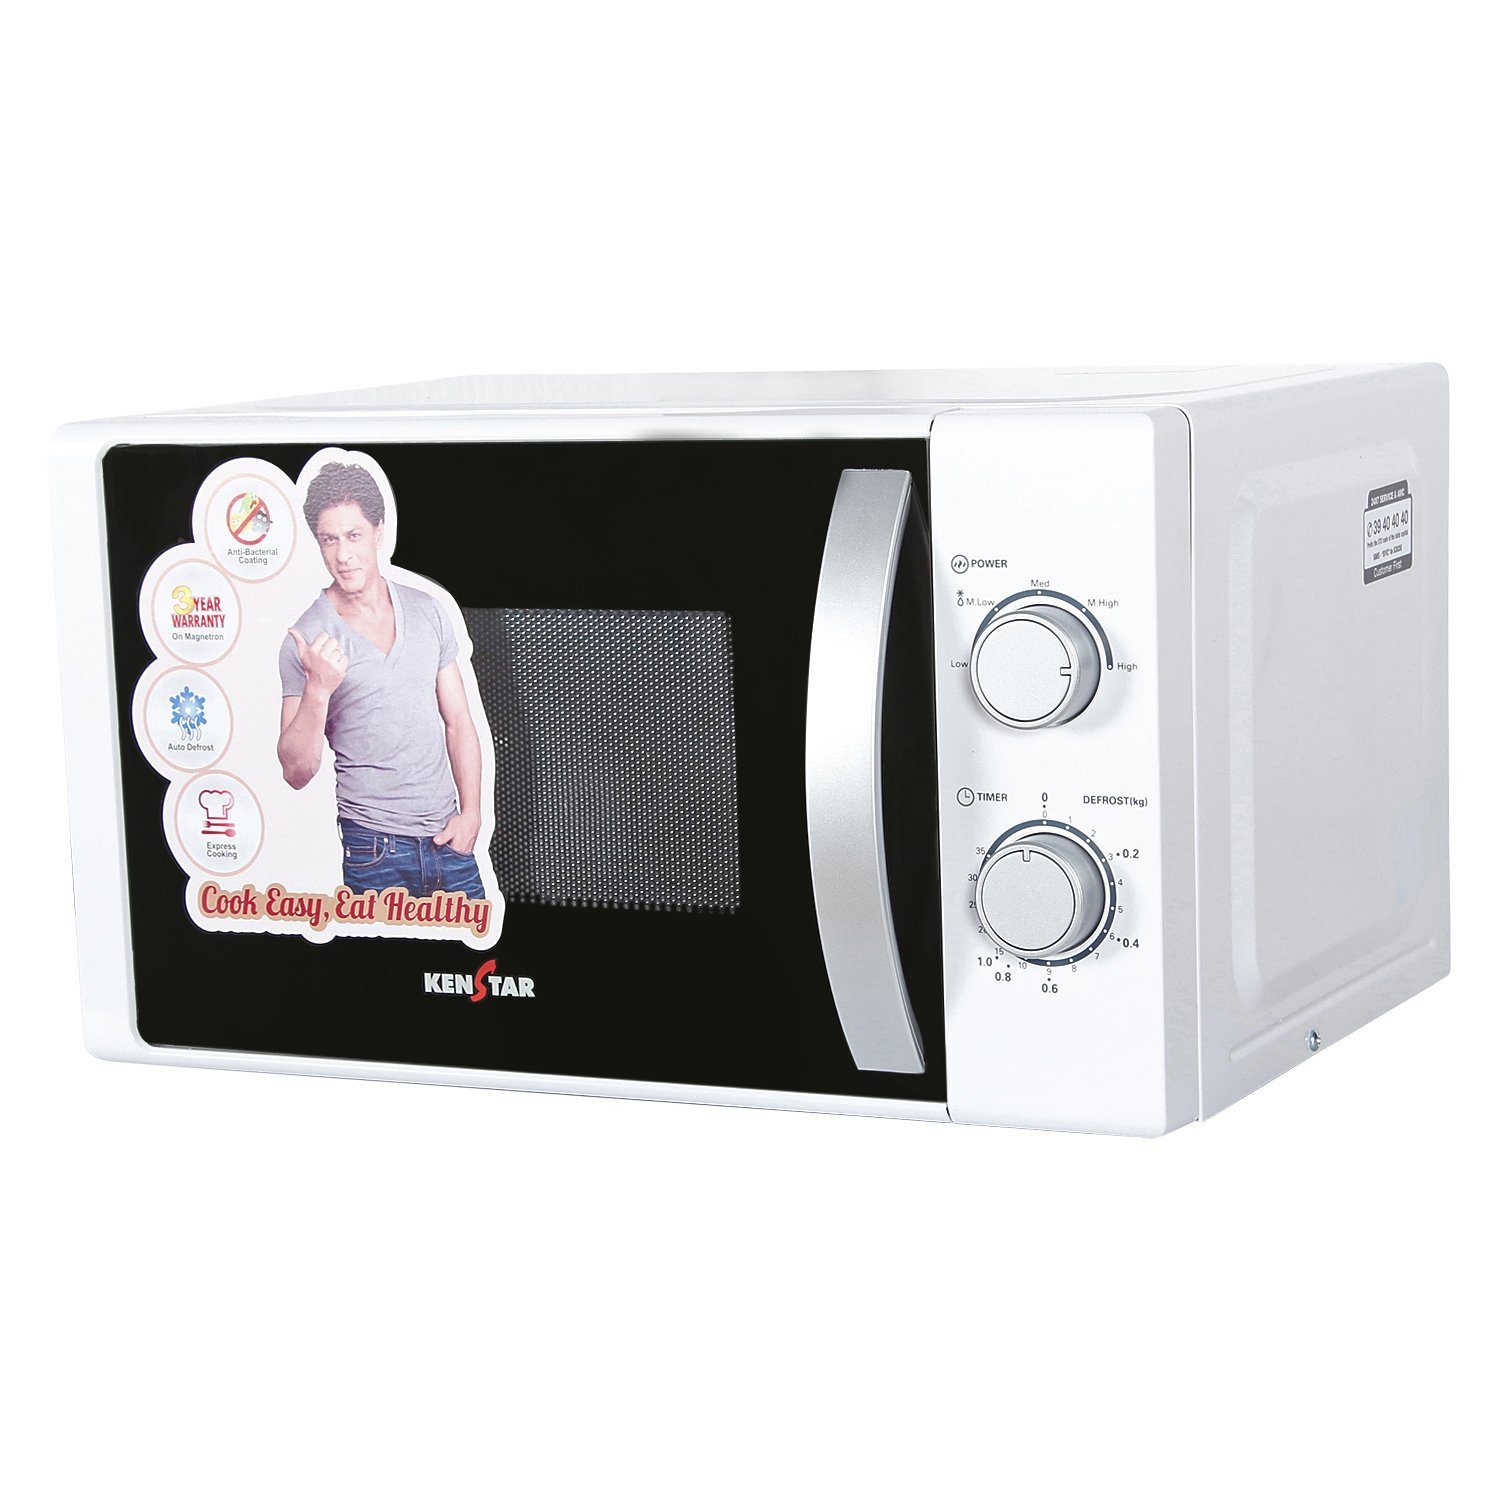 Kenstar microwave oven white color